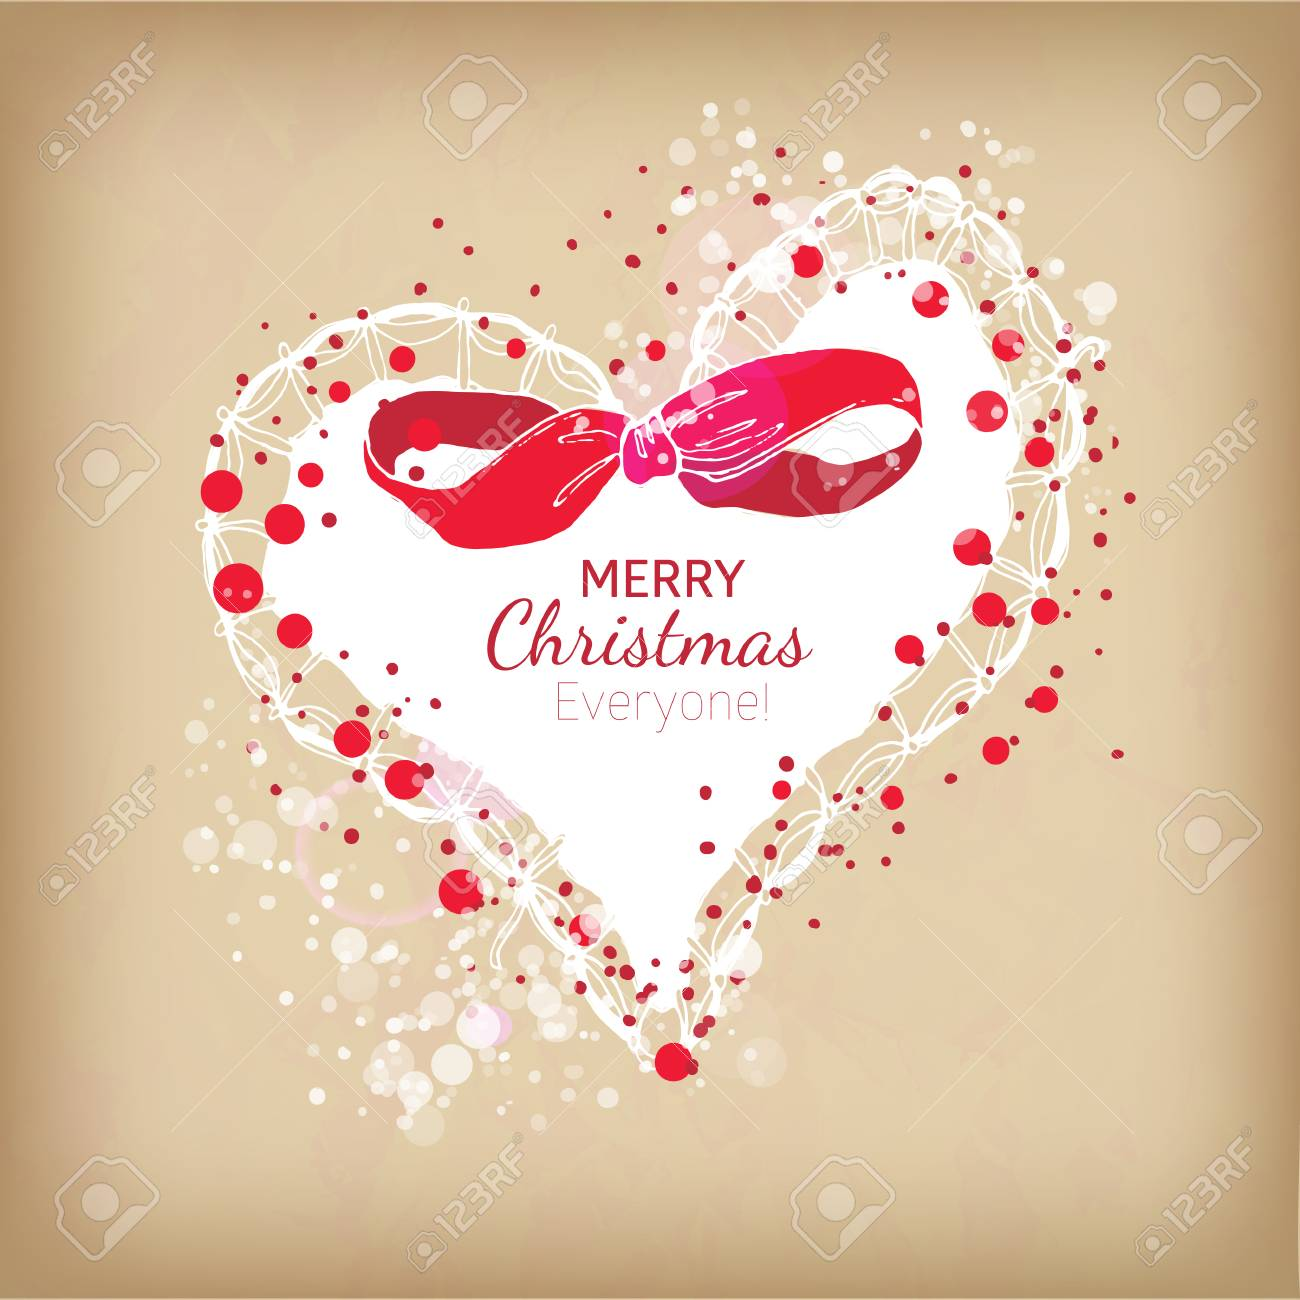 Christmas Heart Vector.Red And White Colors Christmas Heart With Snowflakes Decorative